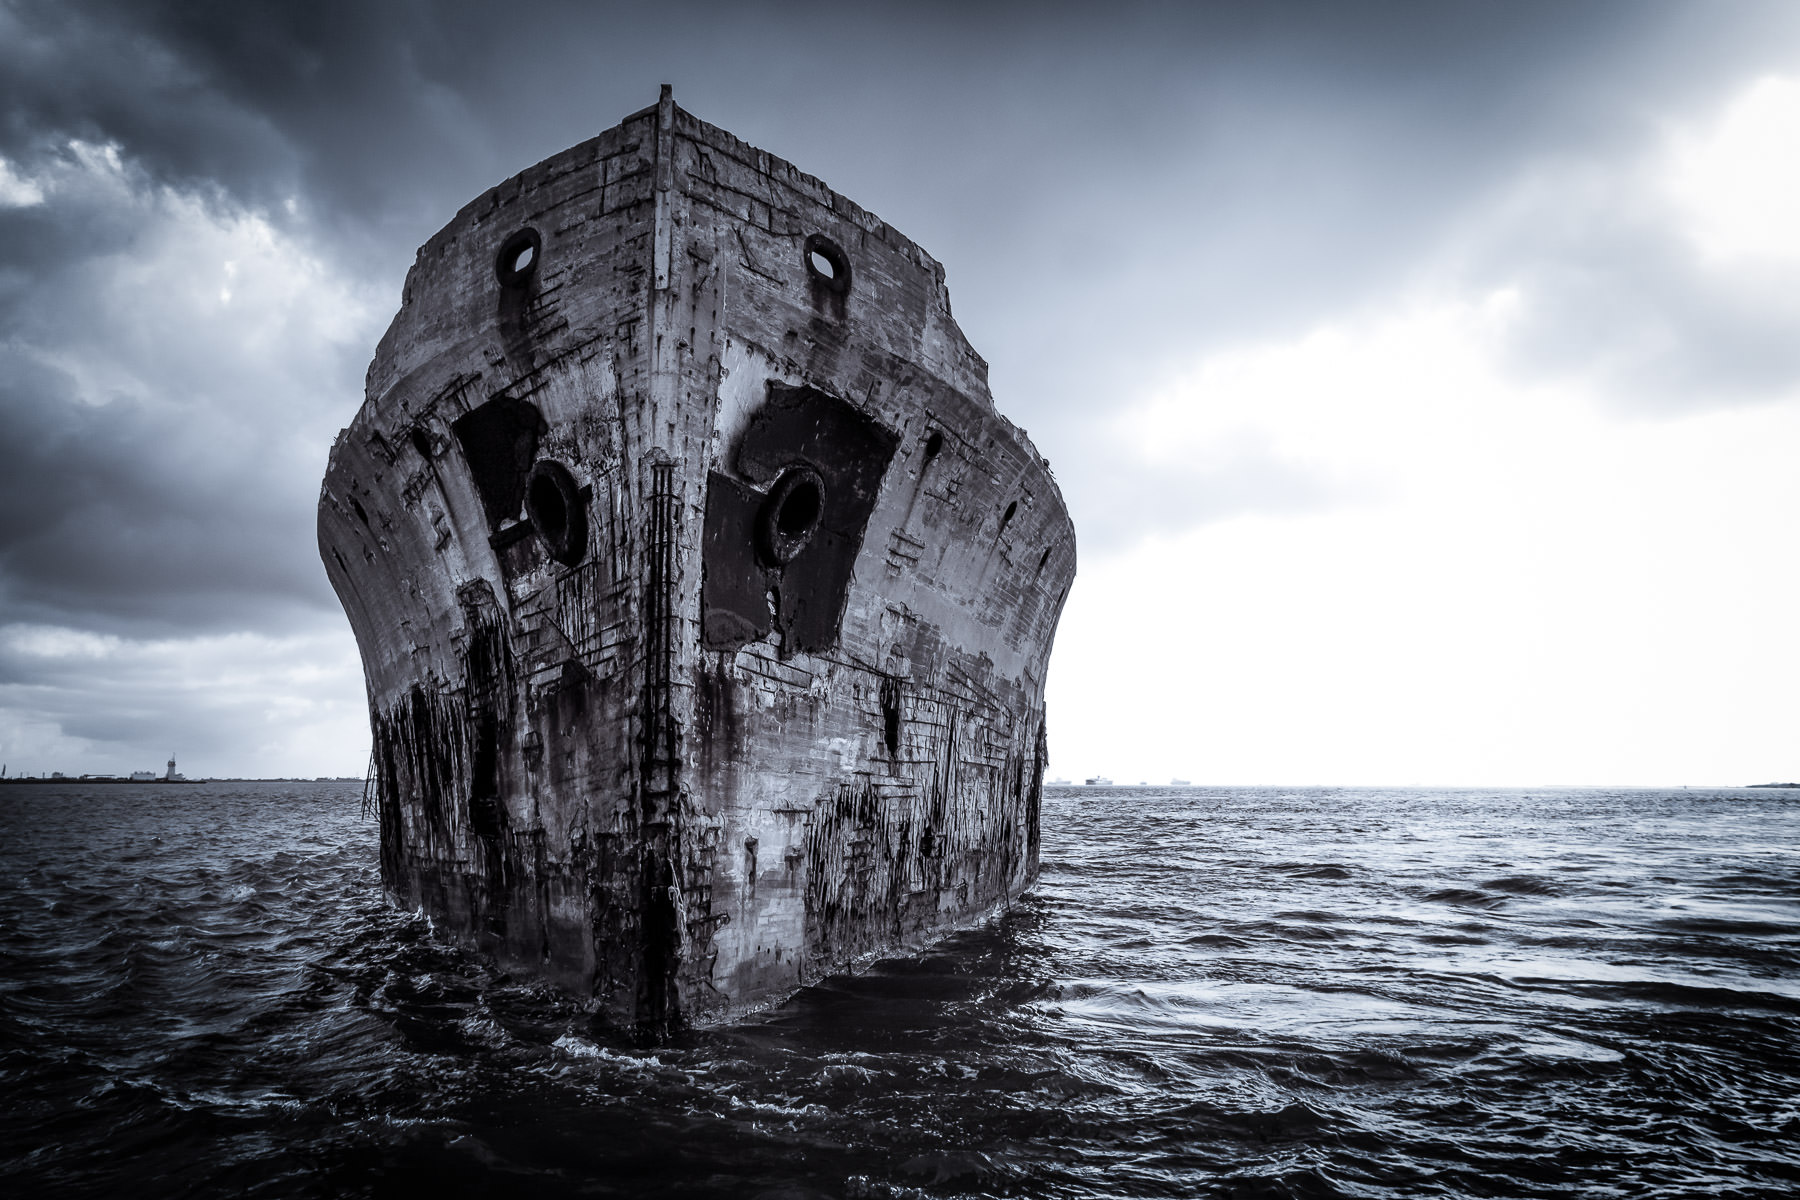 The bow of the wreck of the SS Selma—a 425-foot-long experimental concrete ship built in 1919 and sunk in 1922—rises from the waters of Texas' Galveston Bay.